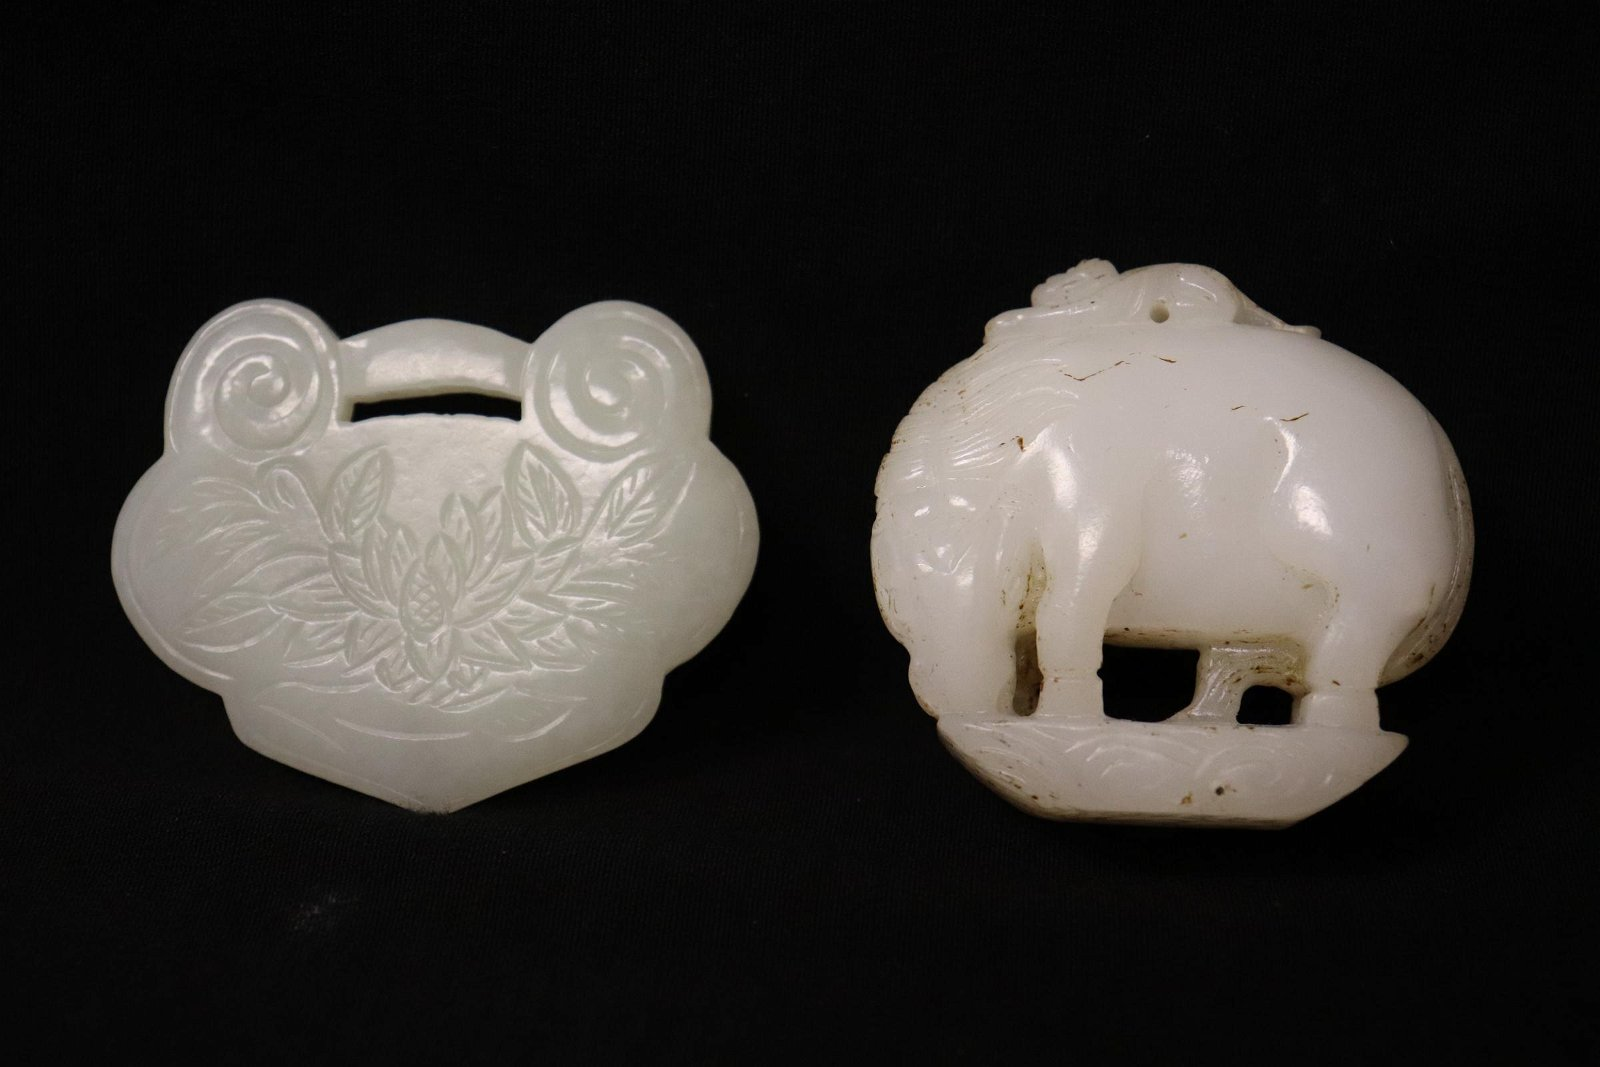 2 white jade carved ornaments